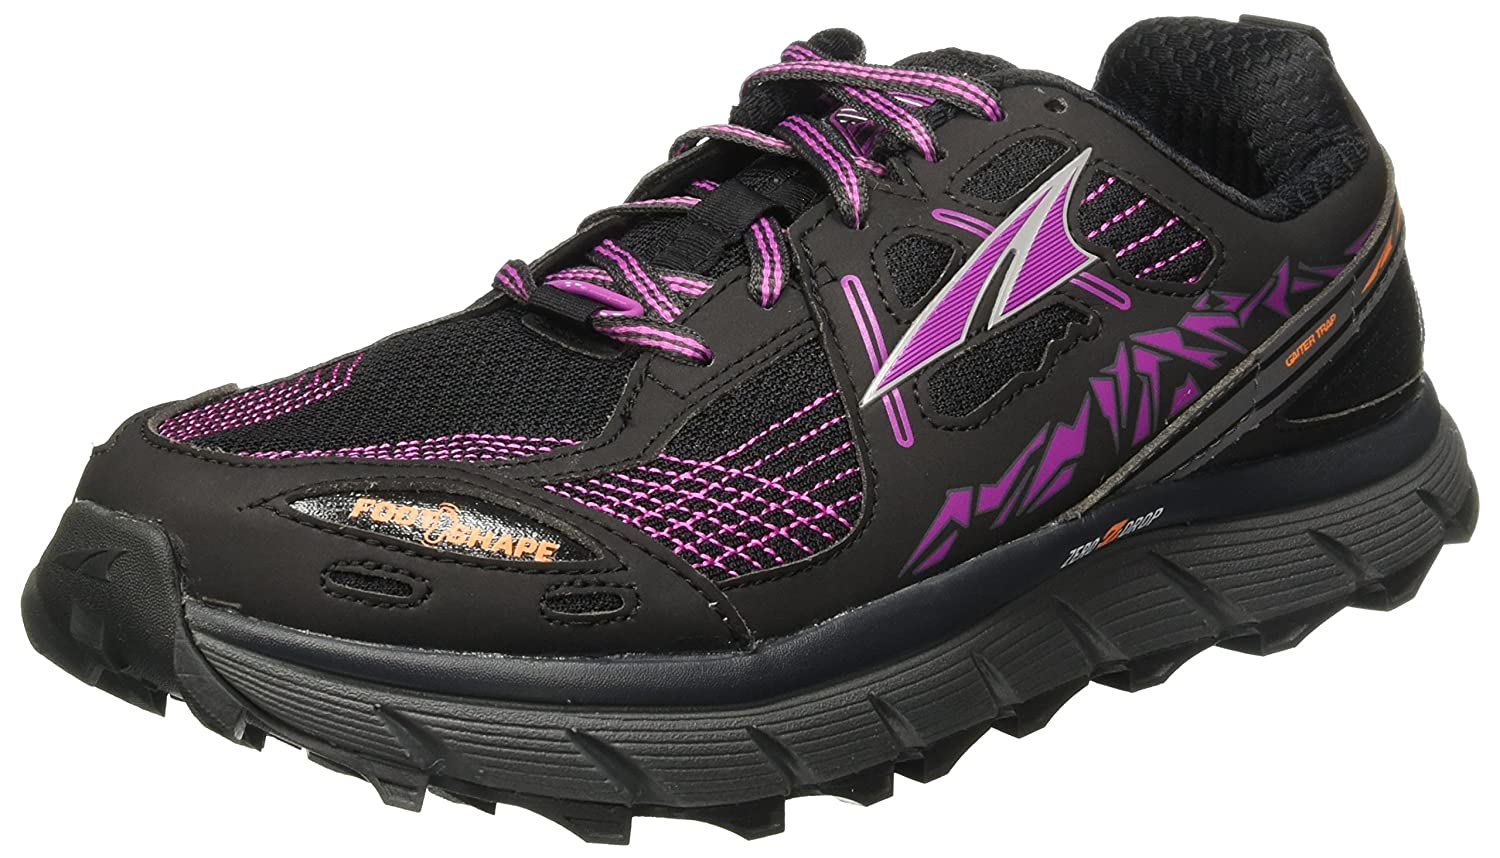 Altra AFW1755F Women's Lone Peak 3.5 US|Purple/Orange Shoes B01N4SJS44 8 B(M) US|Purple/Orange 3.5 8e3ccb